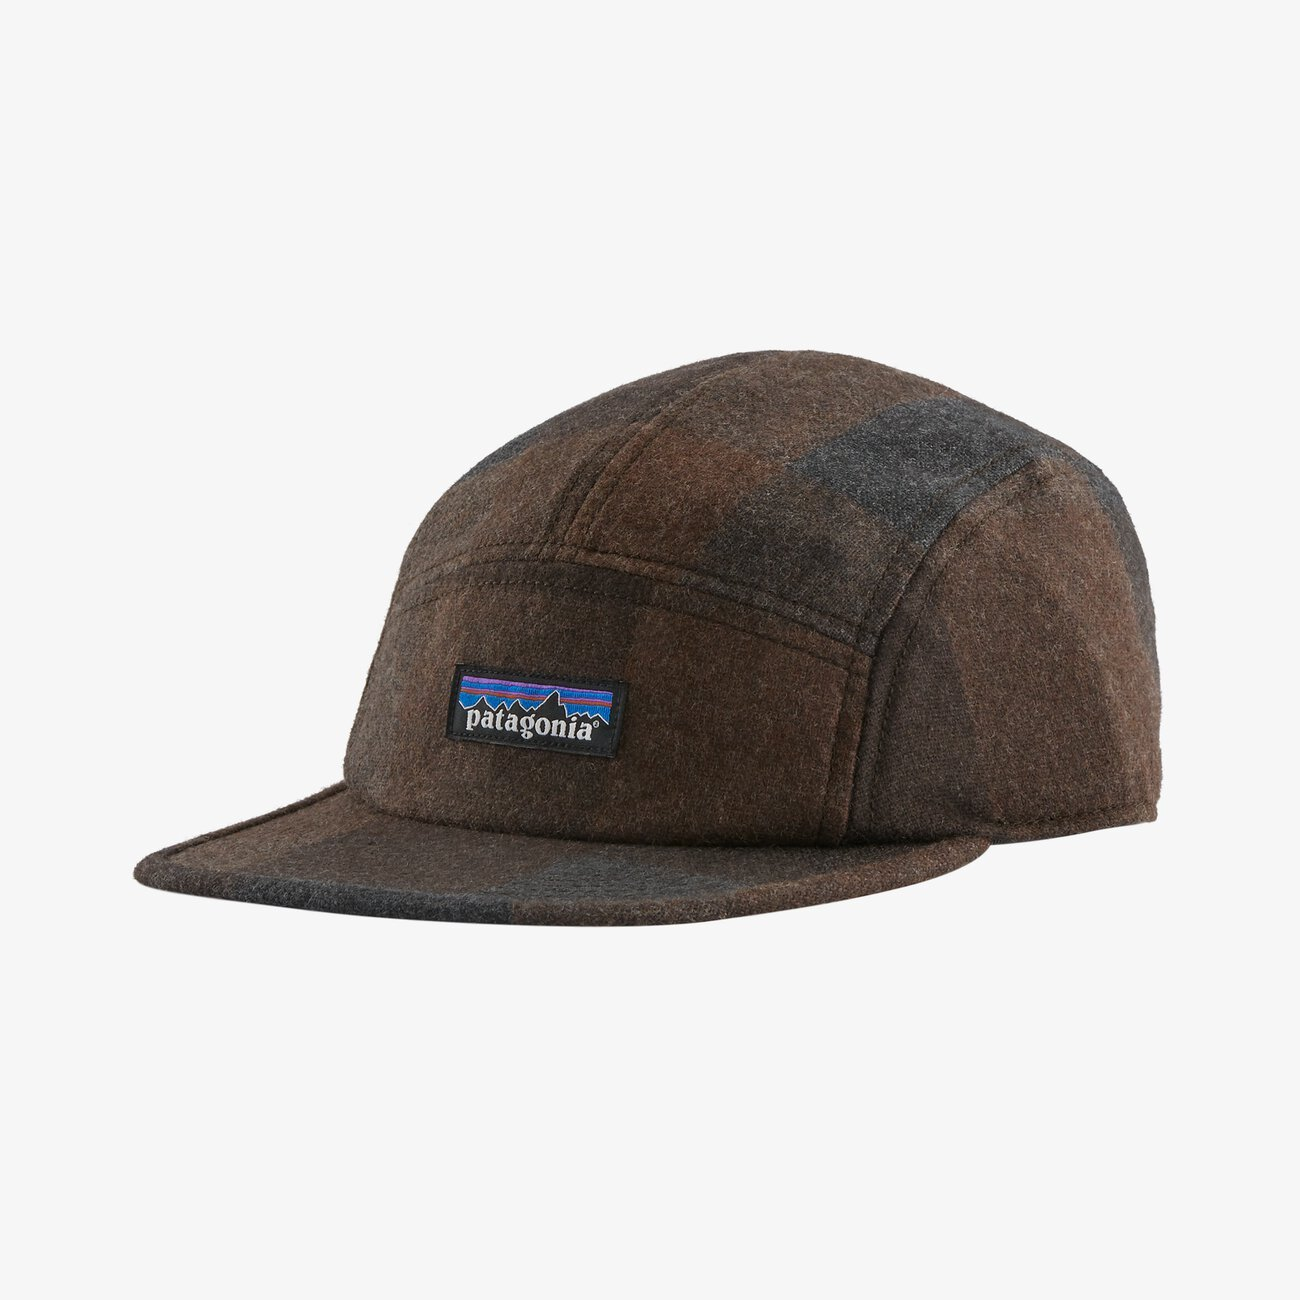 Patagonia | Recycled Wool Cap